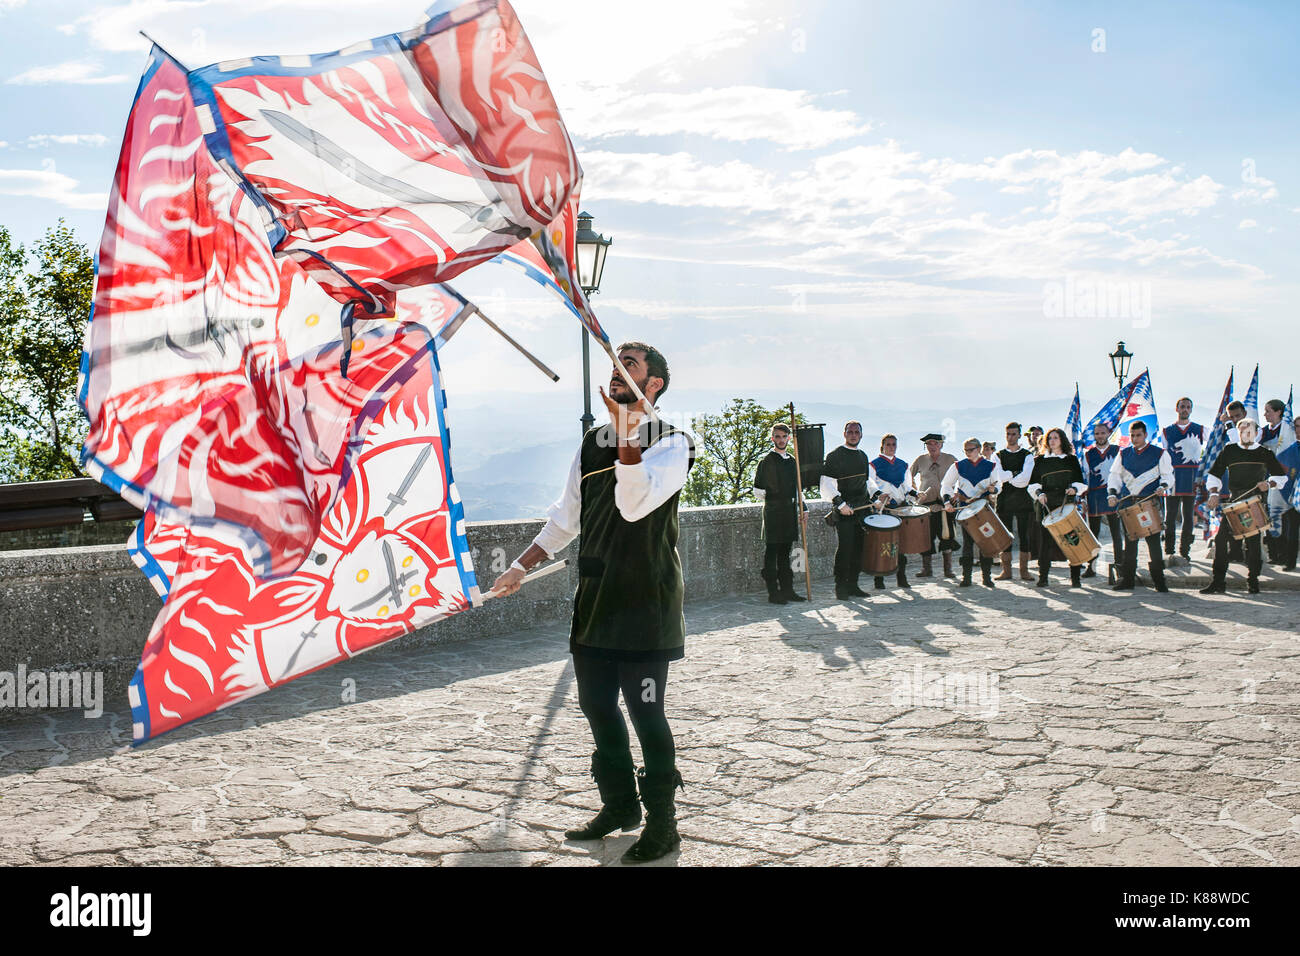 Flag bearer performing a flag juggling demonstration during the annual Medieval Days Festival held in San Marino. - Stock Image